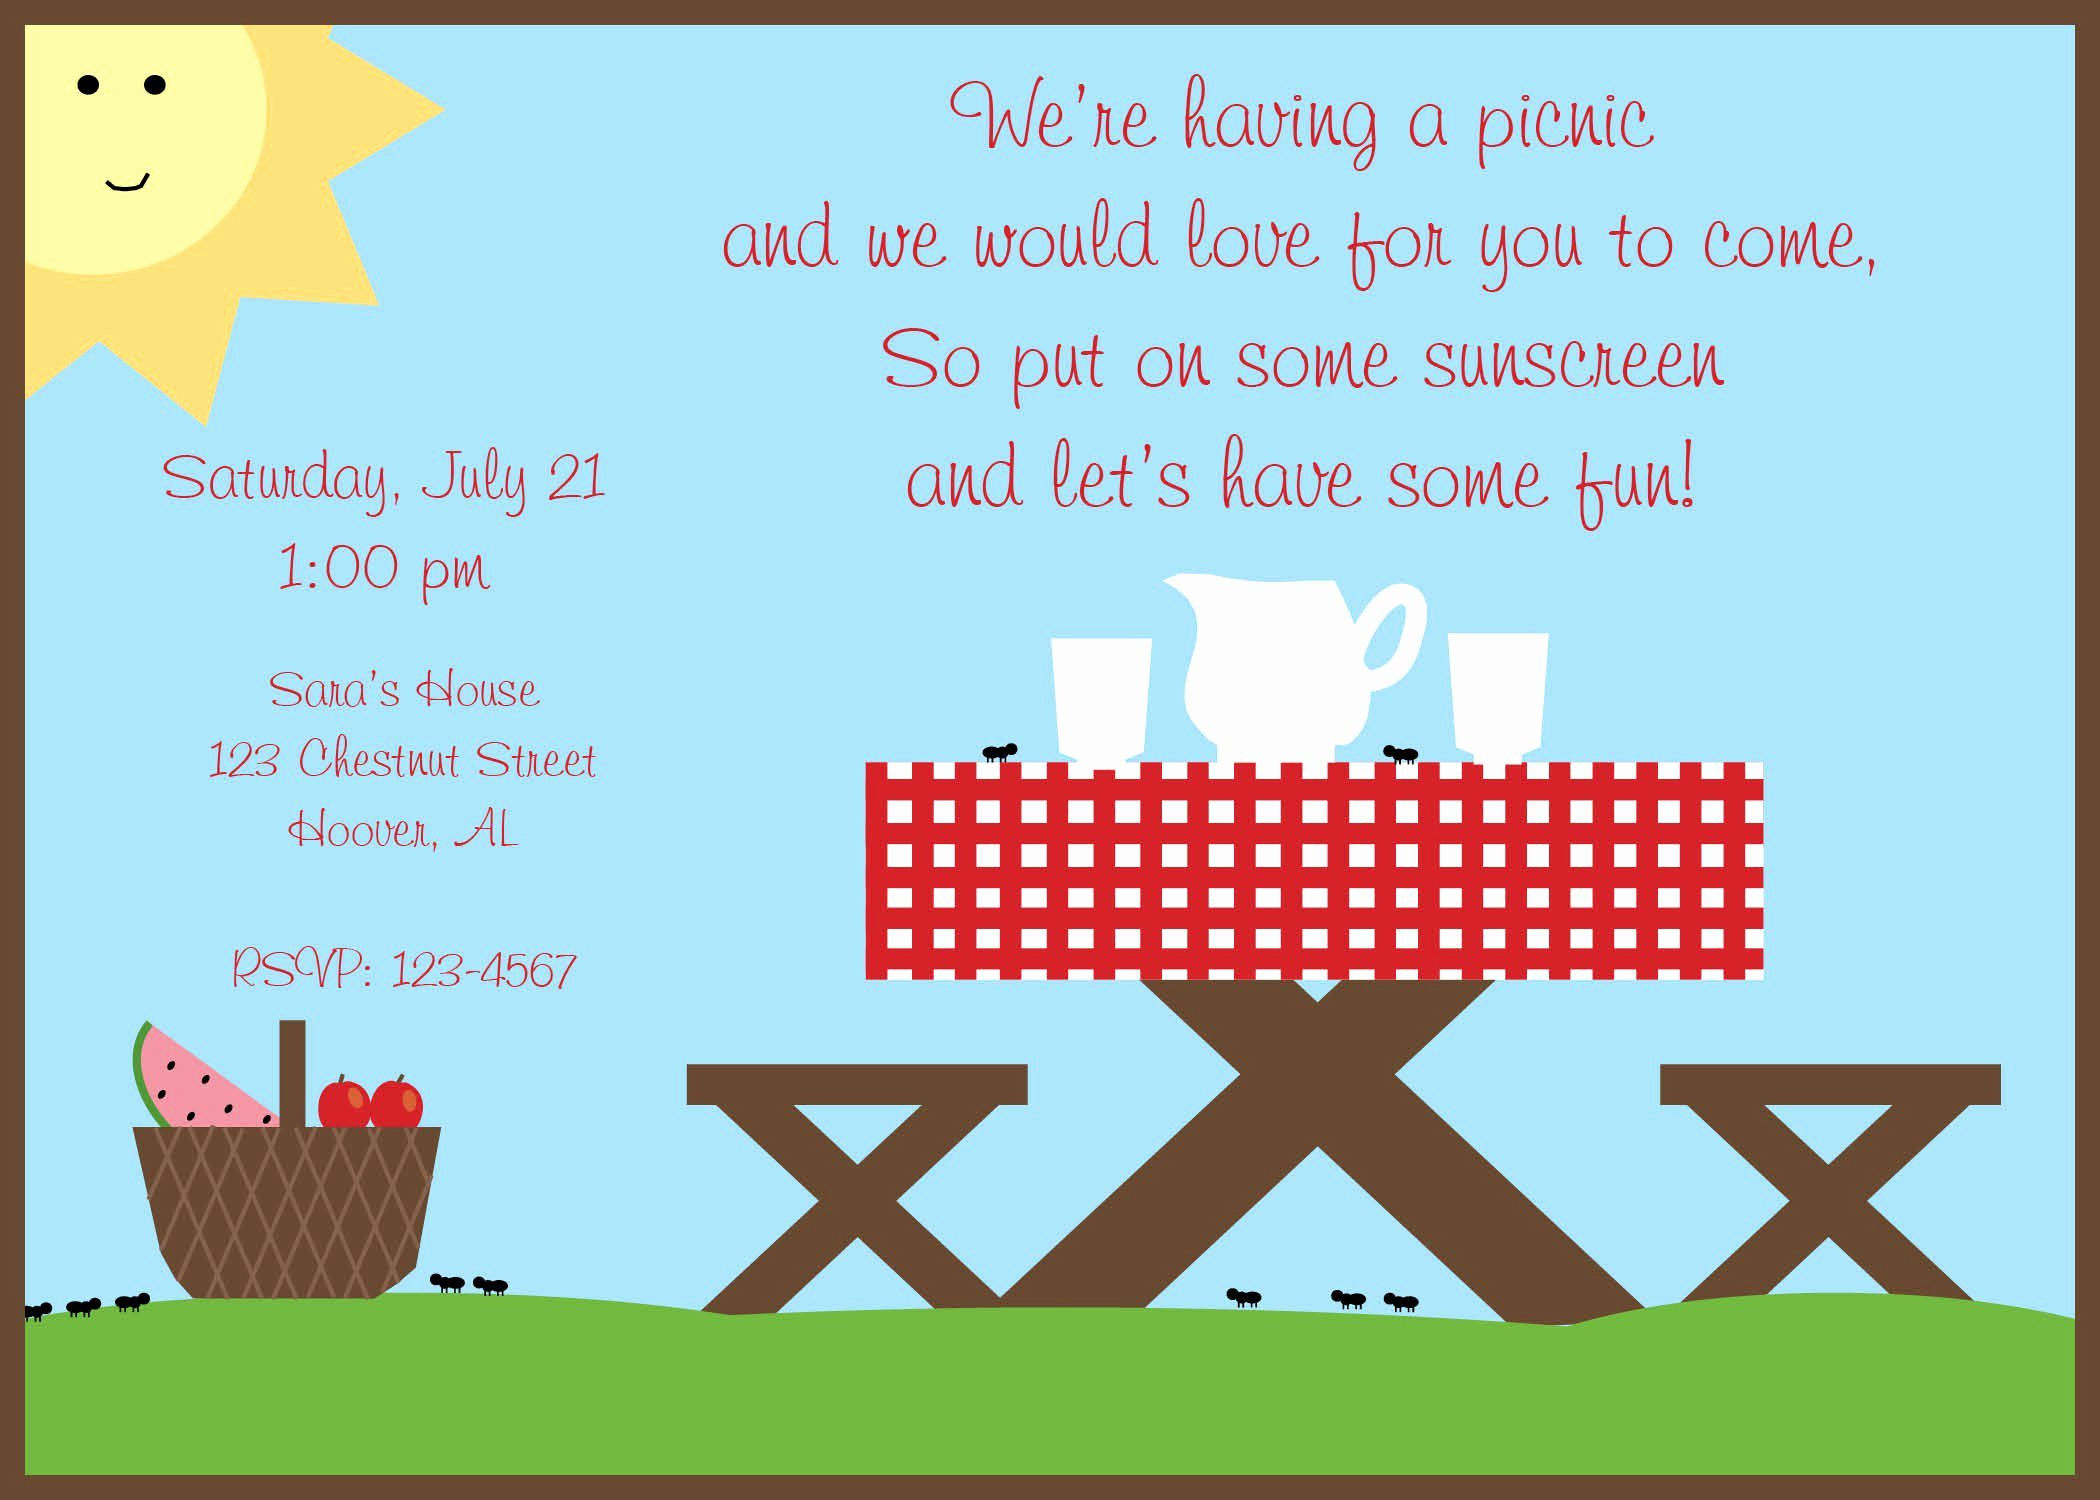 Picnic Invitation Templates Free Inspirational Pany Picnic Invitations